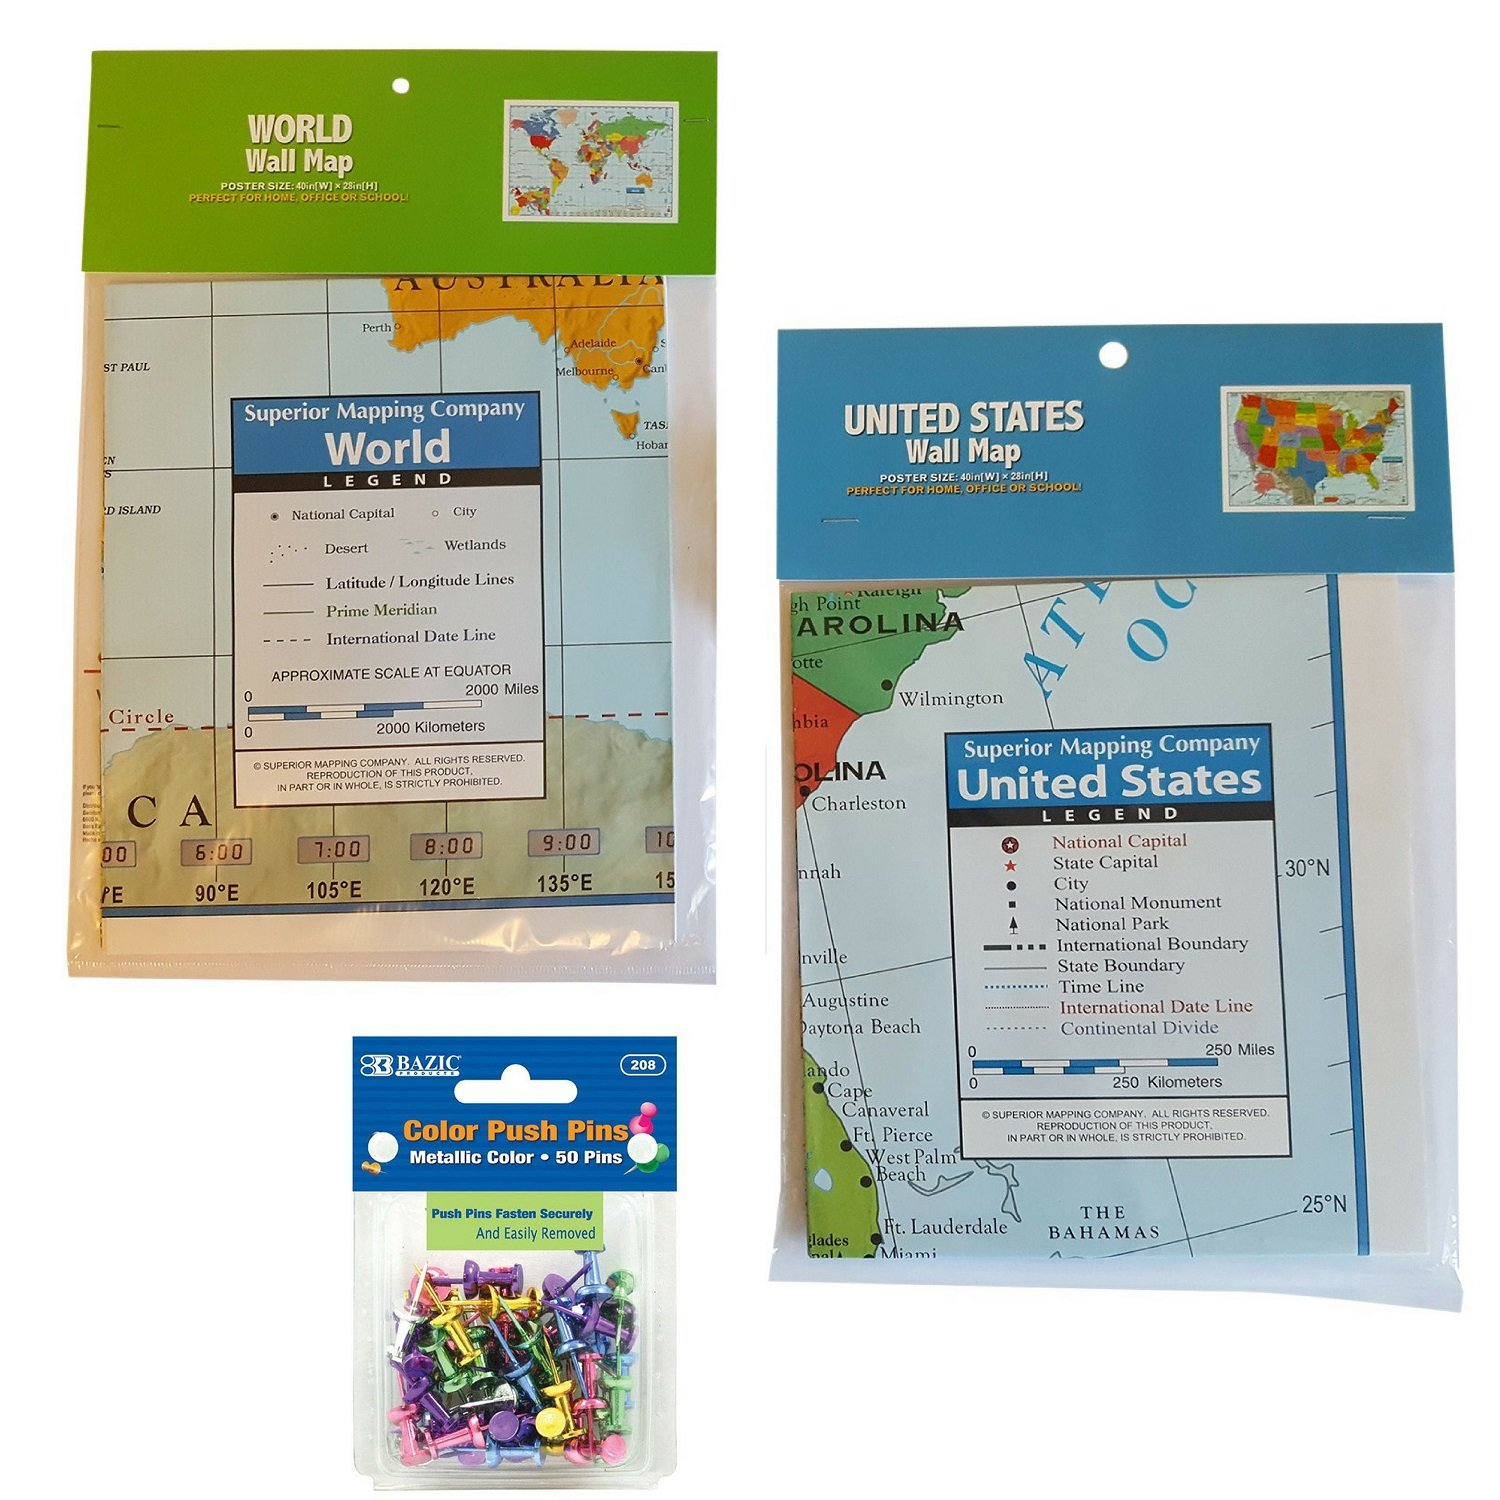 Wall Map Bundle: (1) World Wall Map | (1) United States Wall Map | 1 package of 50 Color Push Pins